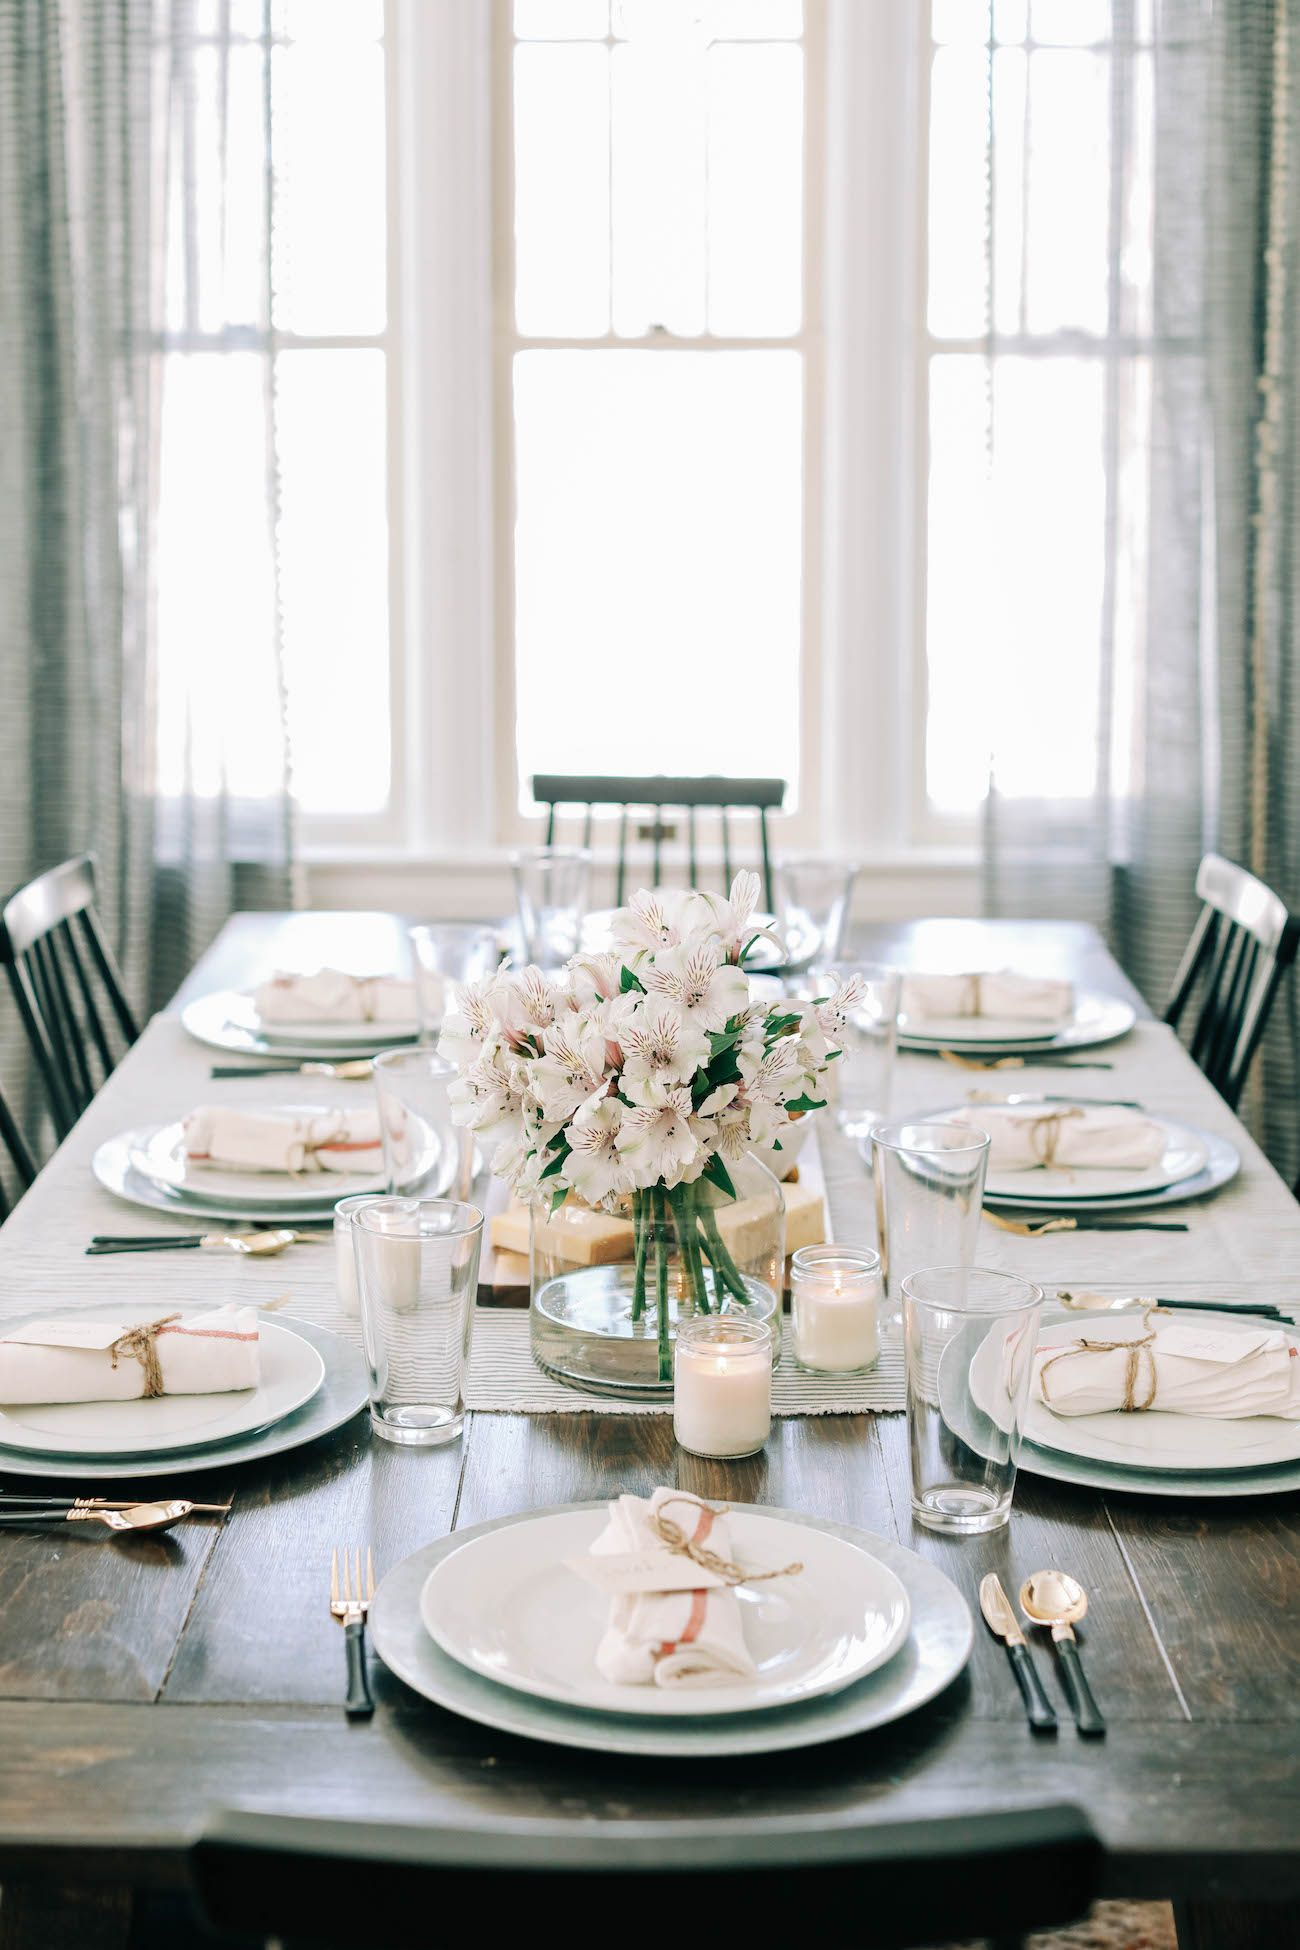 Setting The Table For A Casual Dinner Party Dinner Party Table Settings Dinner Party Table Casual Dinner Parties